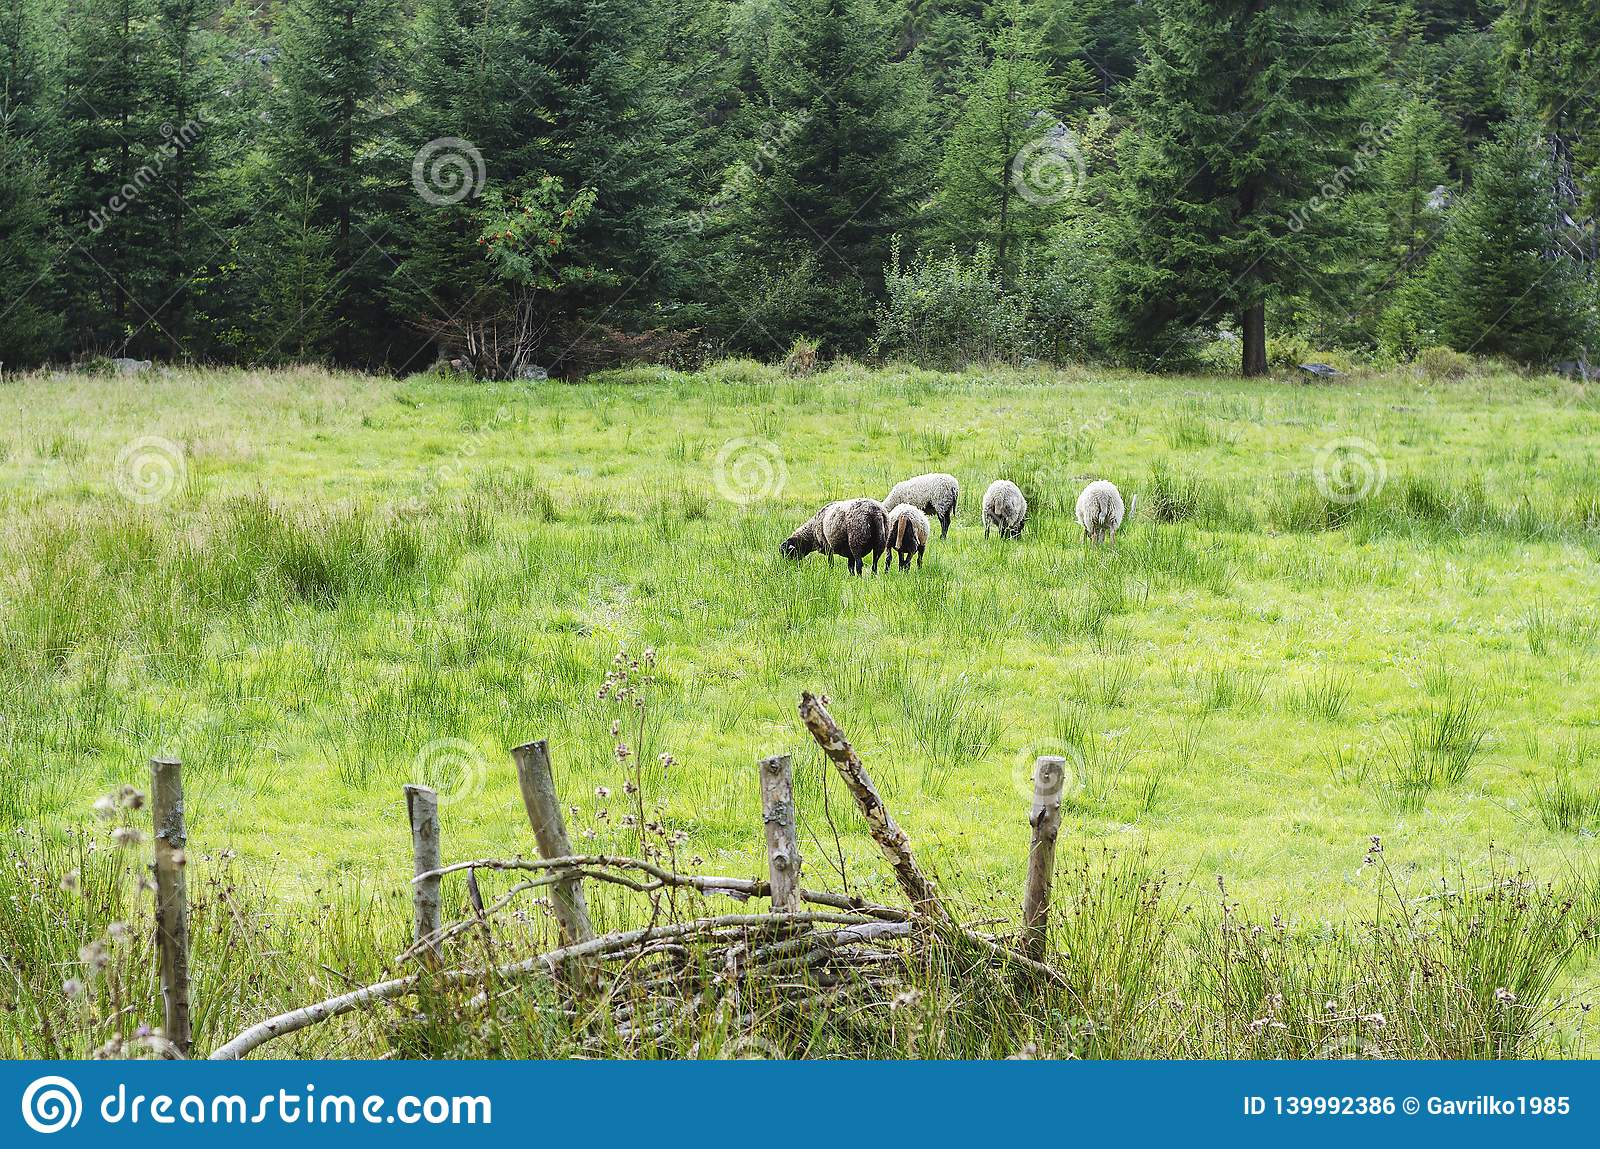 Goats and lambs grazing on the juicy grass of the forest 2